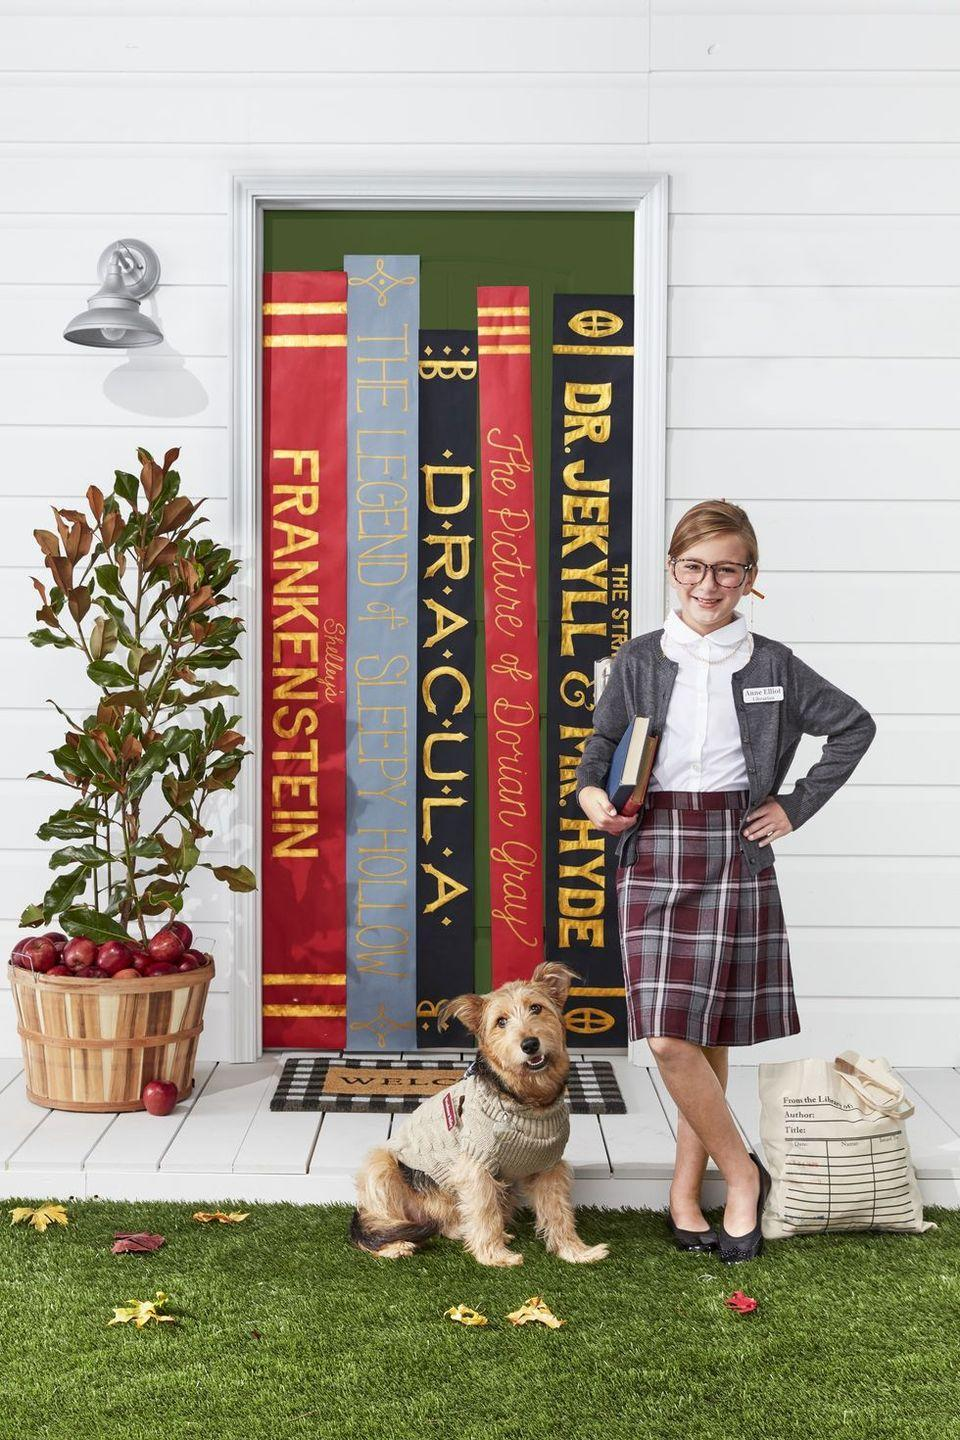 """<p><em>Shhh!</em> We adore the idea of dressing up your child as a smartly dressed librarian. What better way to encourage good reading habits? A library card canvas tote, Peter Pan collar blouse, cardigan sweater, and plaid skirt are just about all you need—oh, and a pair of glasses, of course! </p><p><a class=""""link rapid-noclick-resp"""" href=""""https://www.amazon.com/Library-card-stamps-handbag-Market/dp/B073QTSR1Y?tag=syn-yahoo-20&ascsubtag=%5Bartid%7C10050.g.23785711%5Bsrc%7Cyahoo-us"""" rel=""""nofollow noopener"""" target=""""_blank"""" data-ylk=""""slk:SHOP LIBRARY CARD TOTES"""">SHOP LIBRARY CARD TOTES</a></p>"""